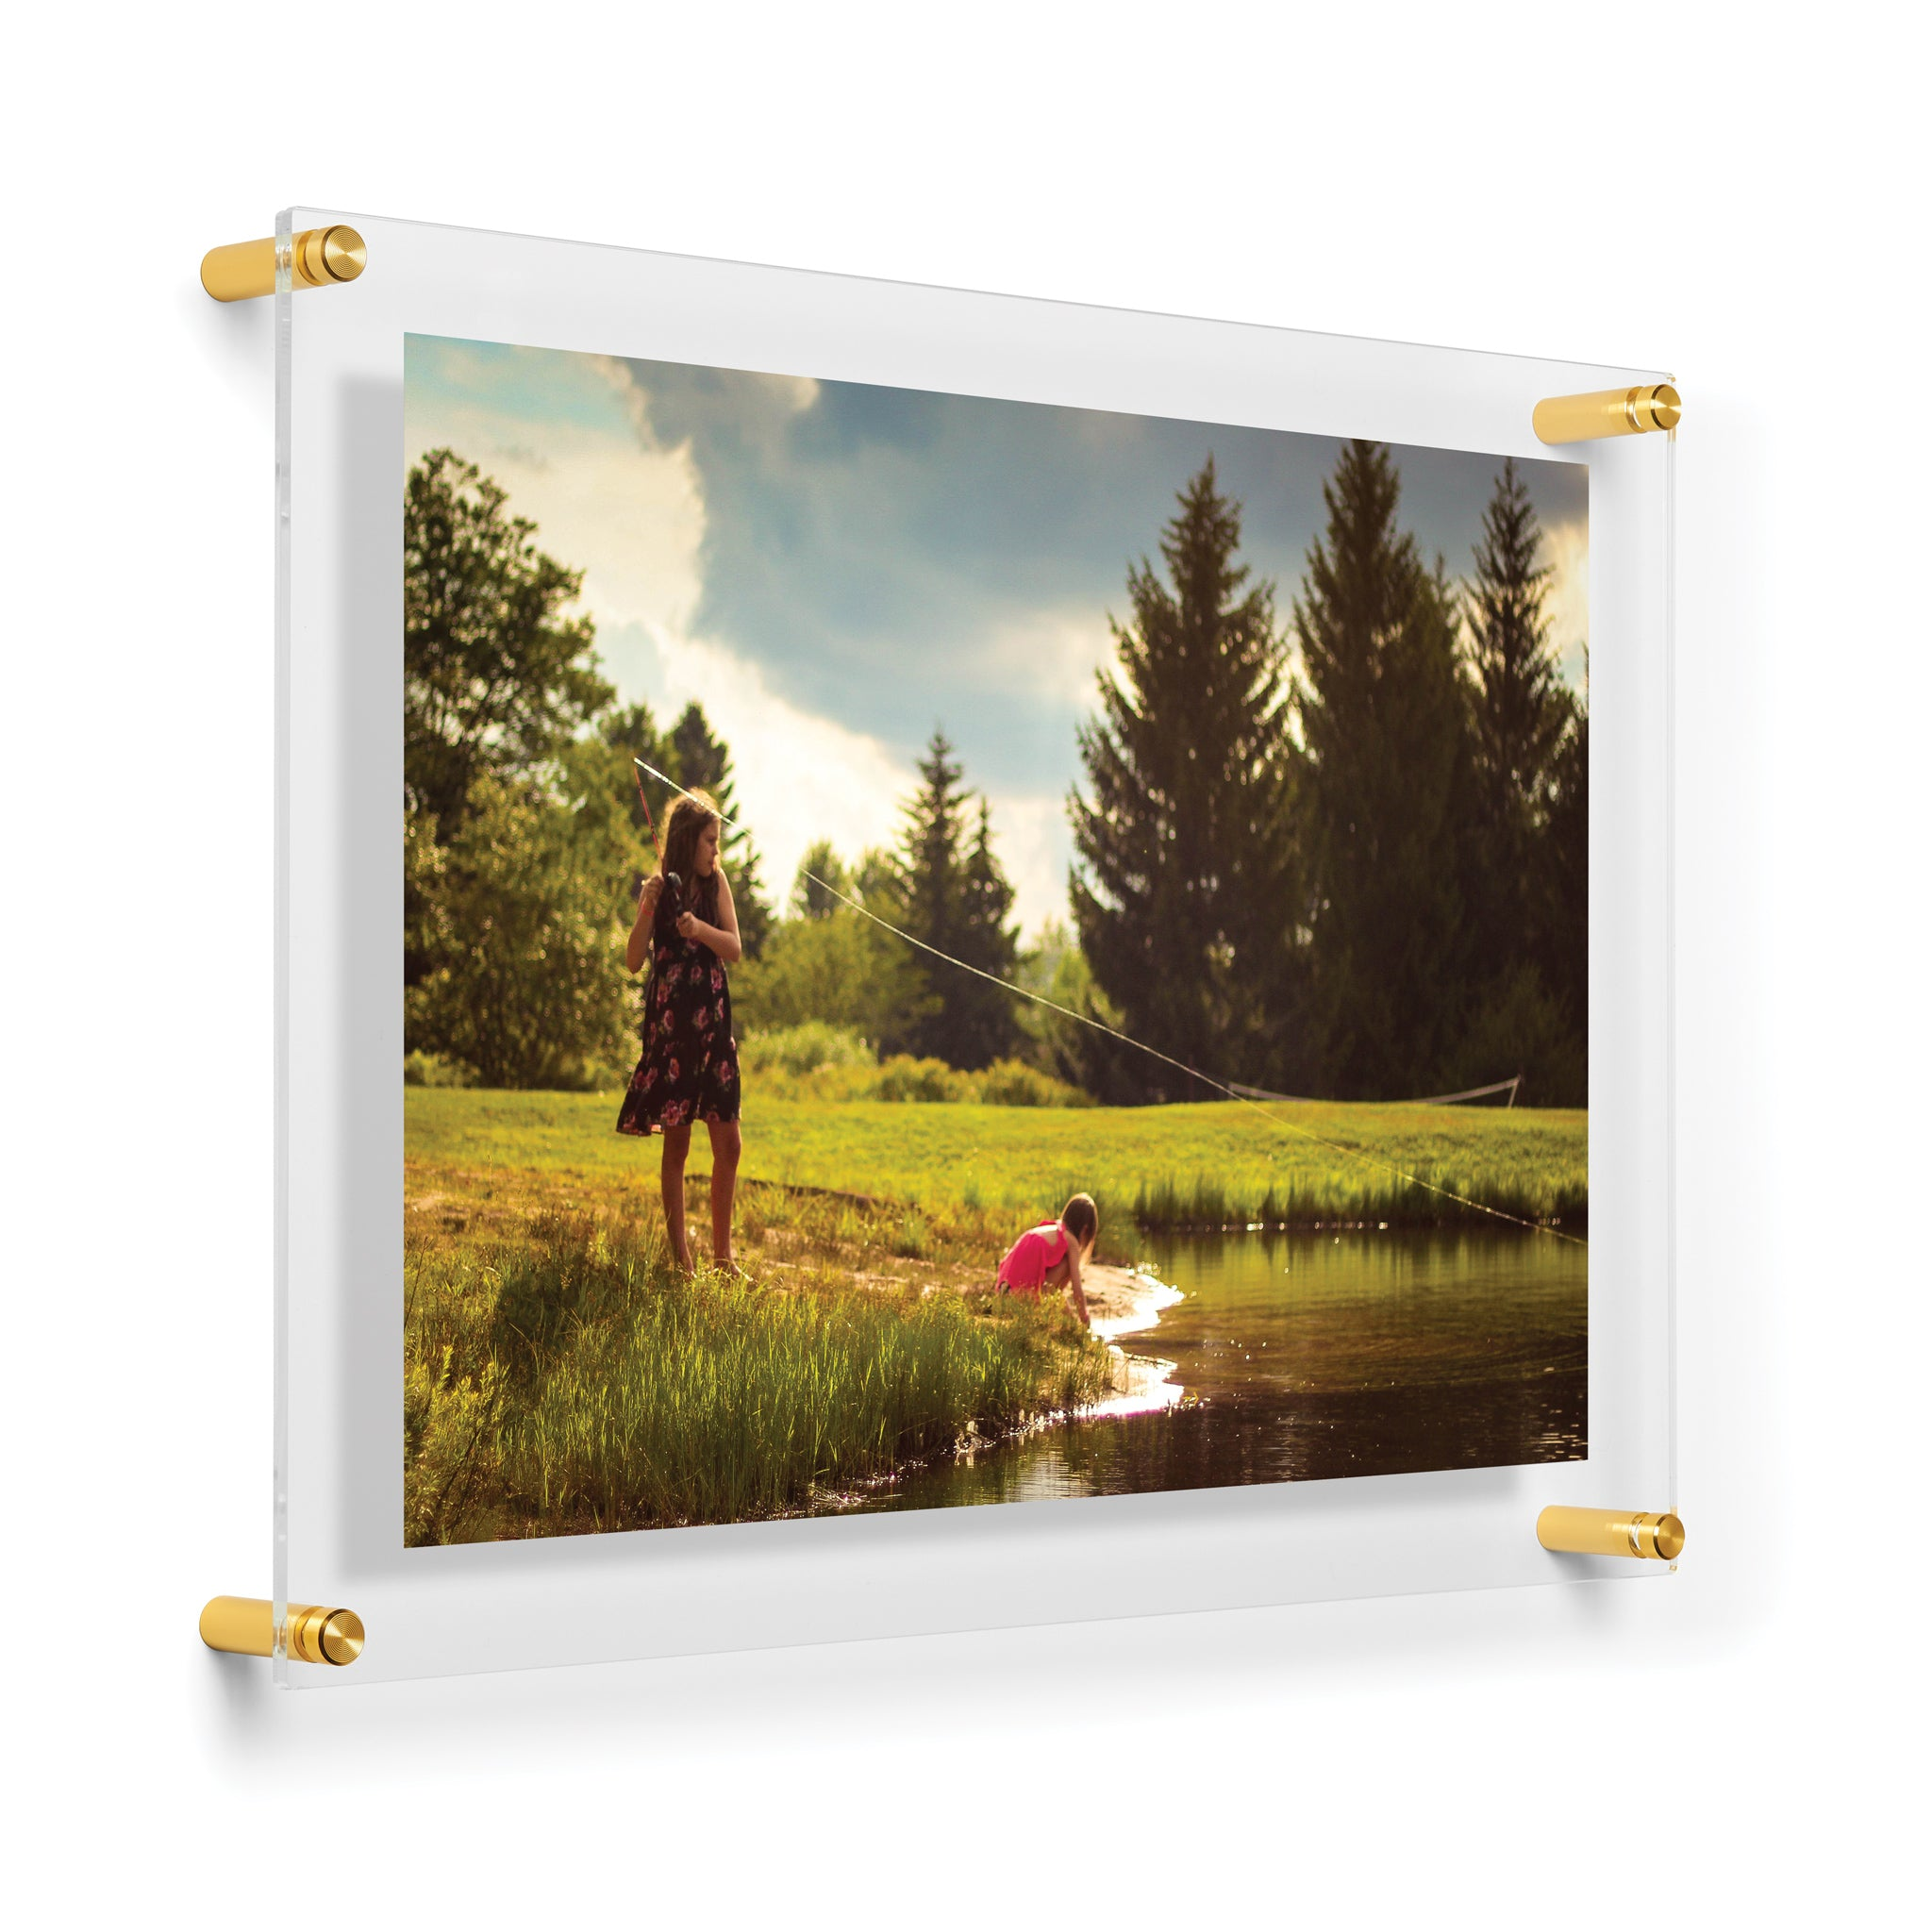 Double Panel Acrylic Floating Frame 15 X 21 Wexel Art